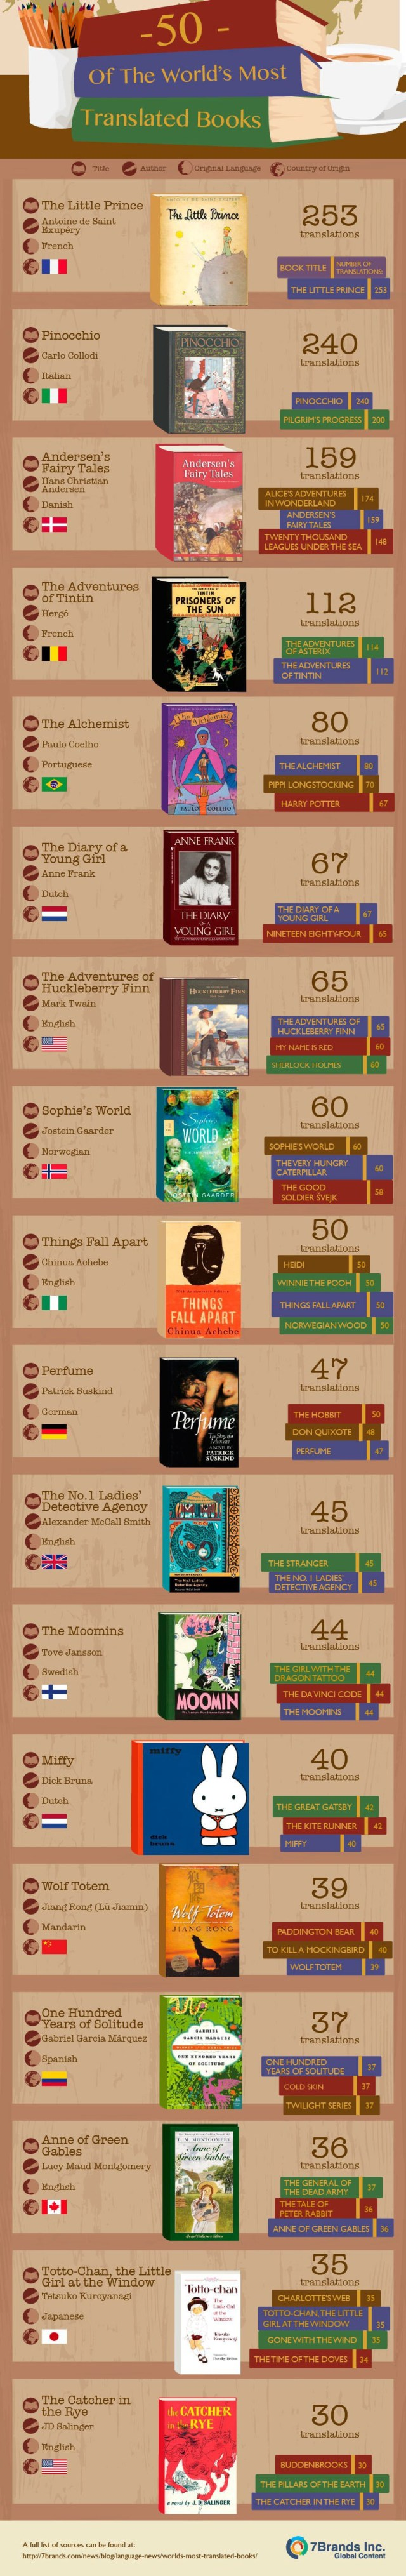 infographic translated books